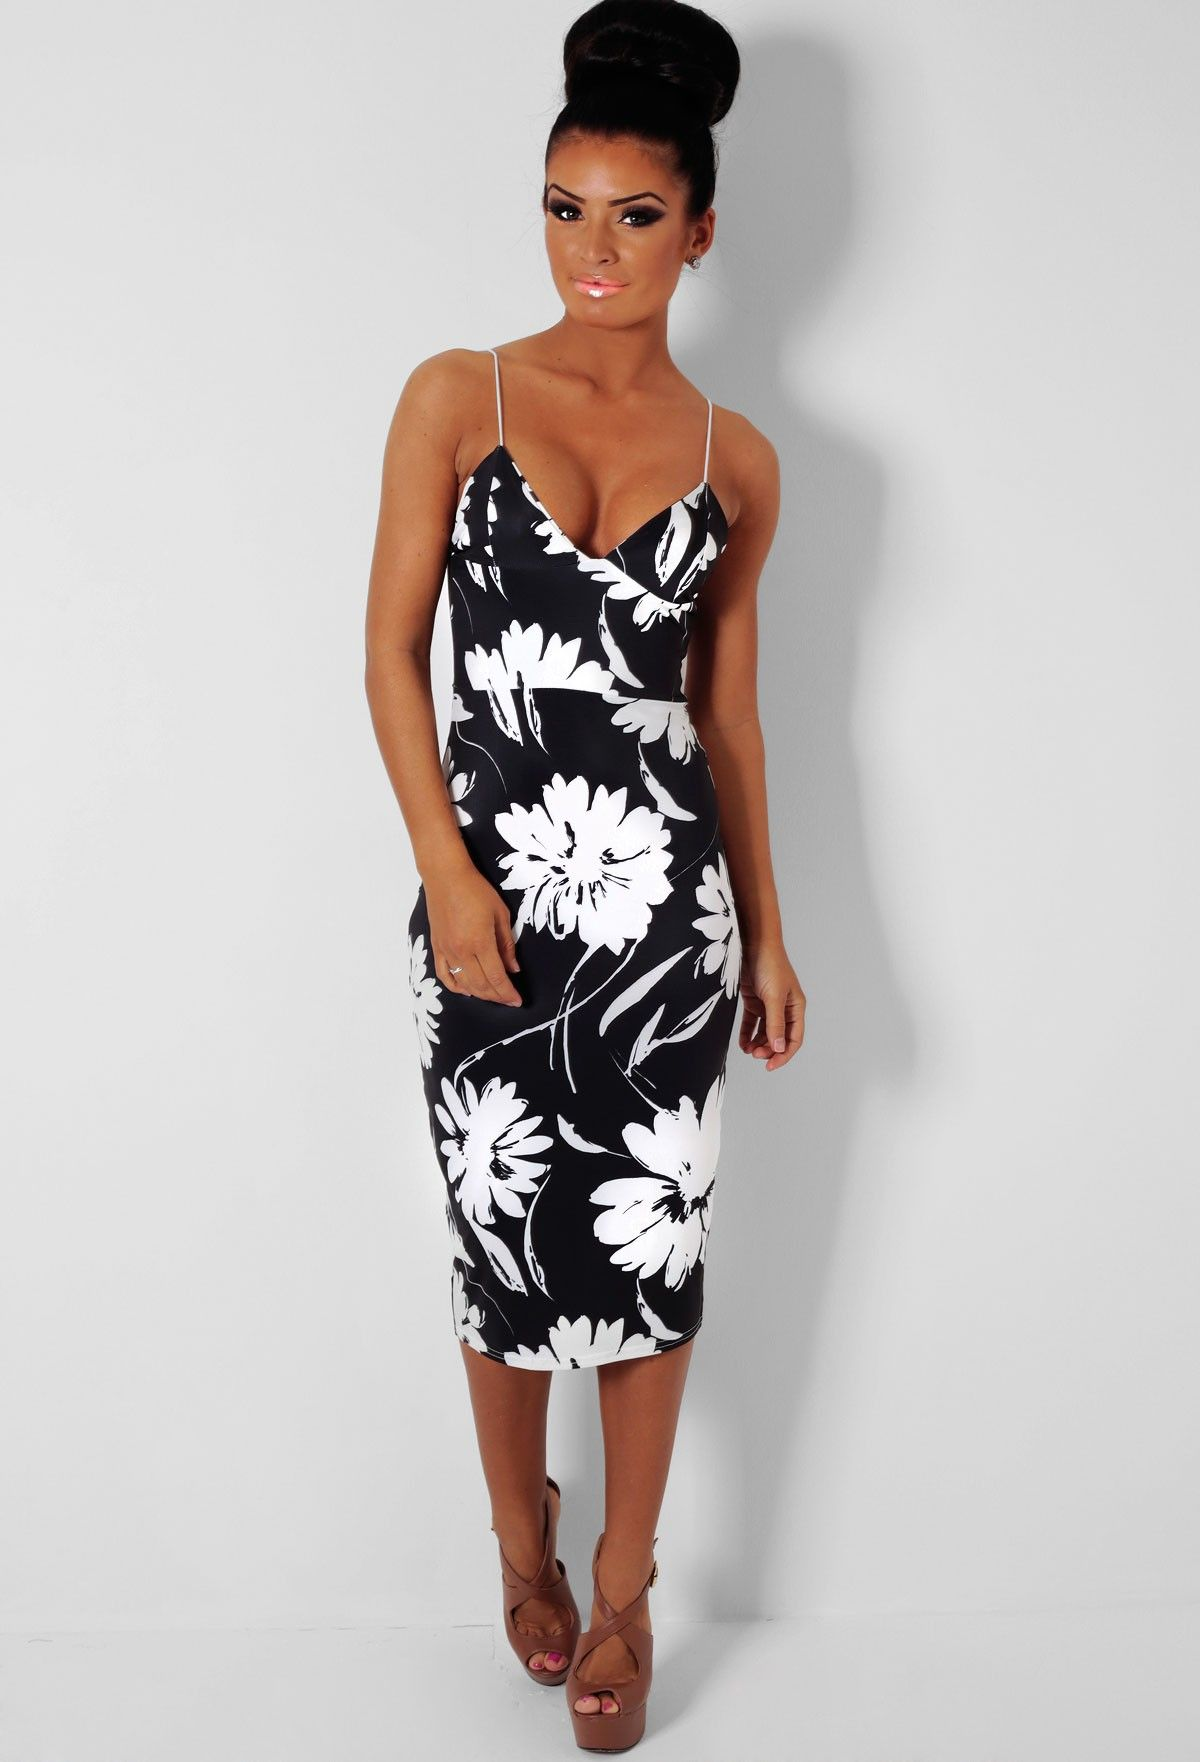 Black dress with white flowers stock flower images pinterest black dress with white flowers dhlflorist Choice Image